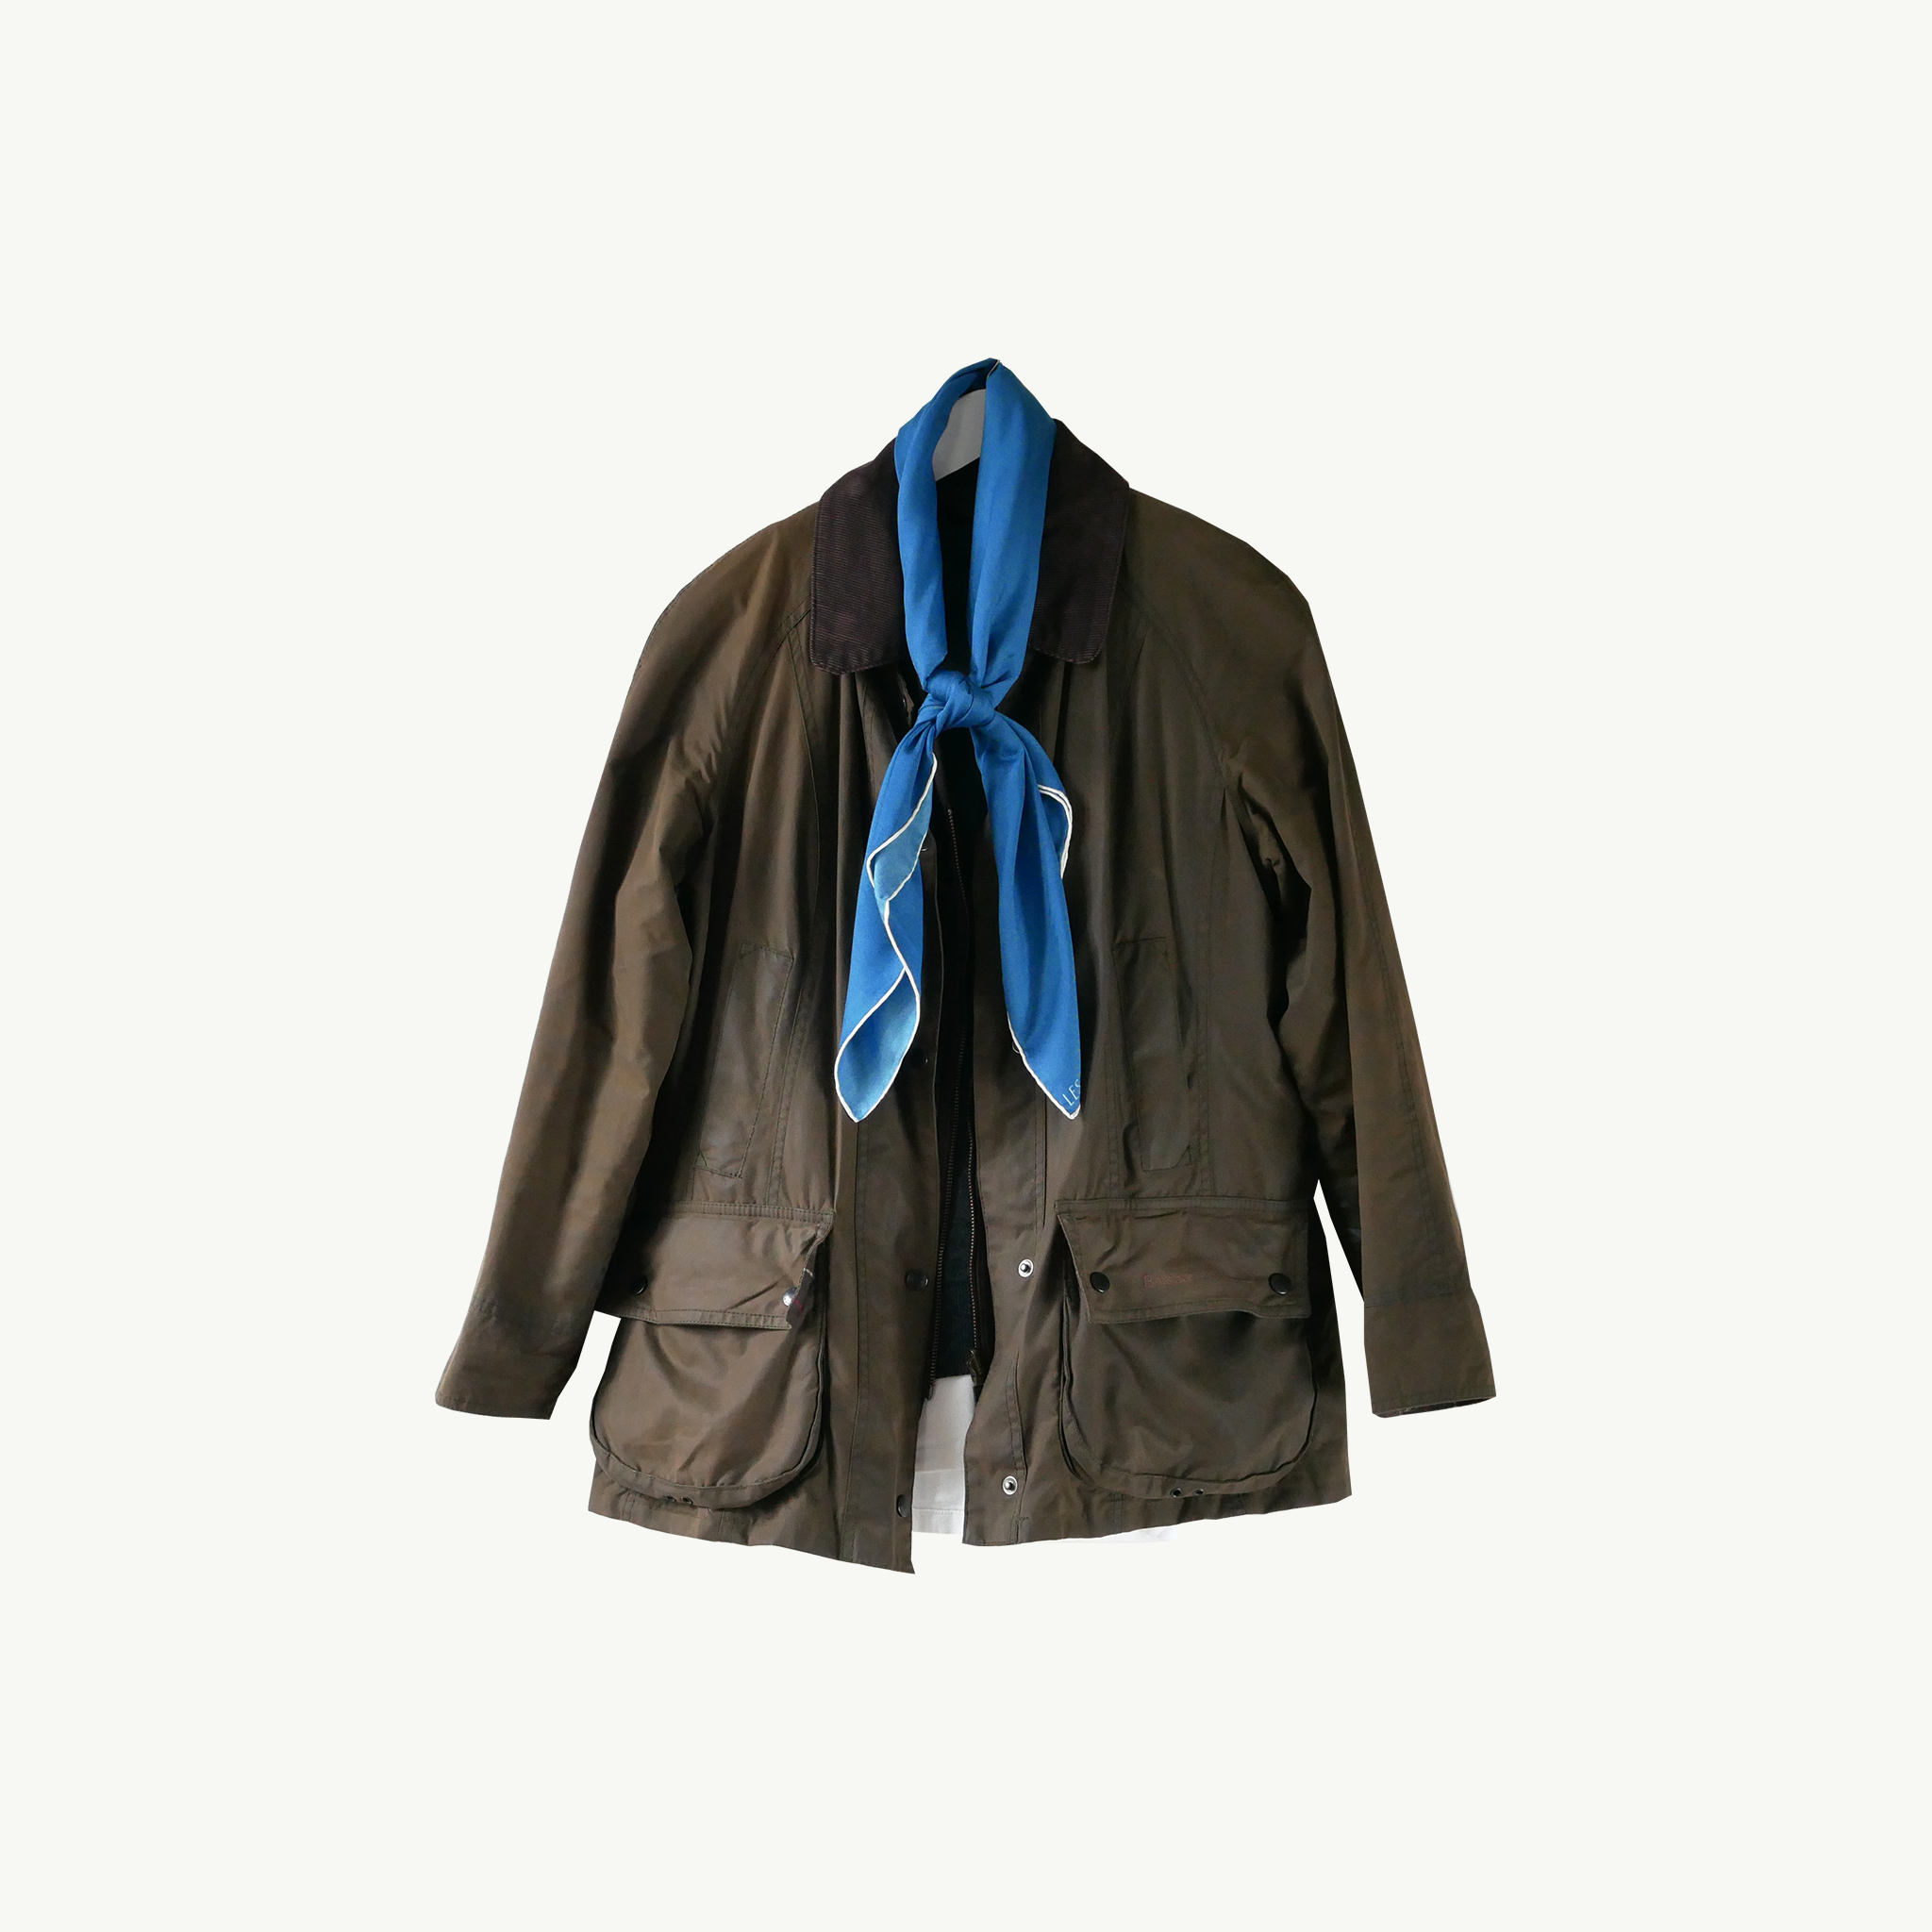 Les Belles Heures Cavallo, 18h17 100% hand rolled cashmere, modal and silk scarf in our 90cm format worn on a vintage waxed jacket